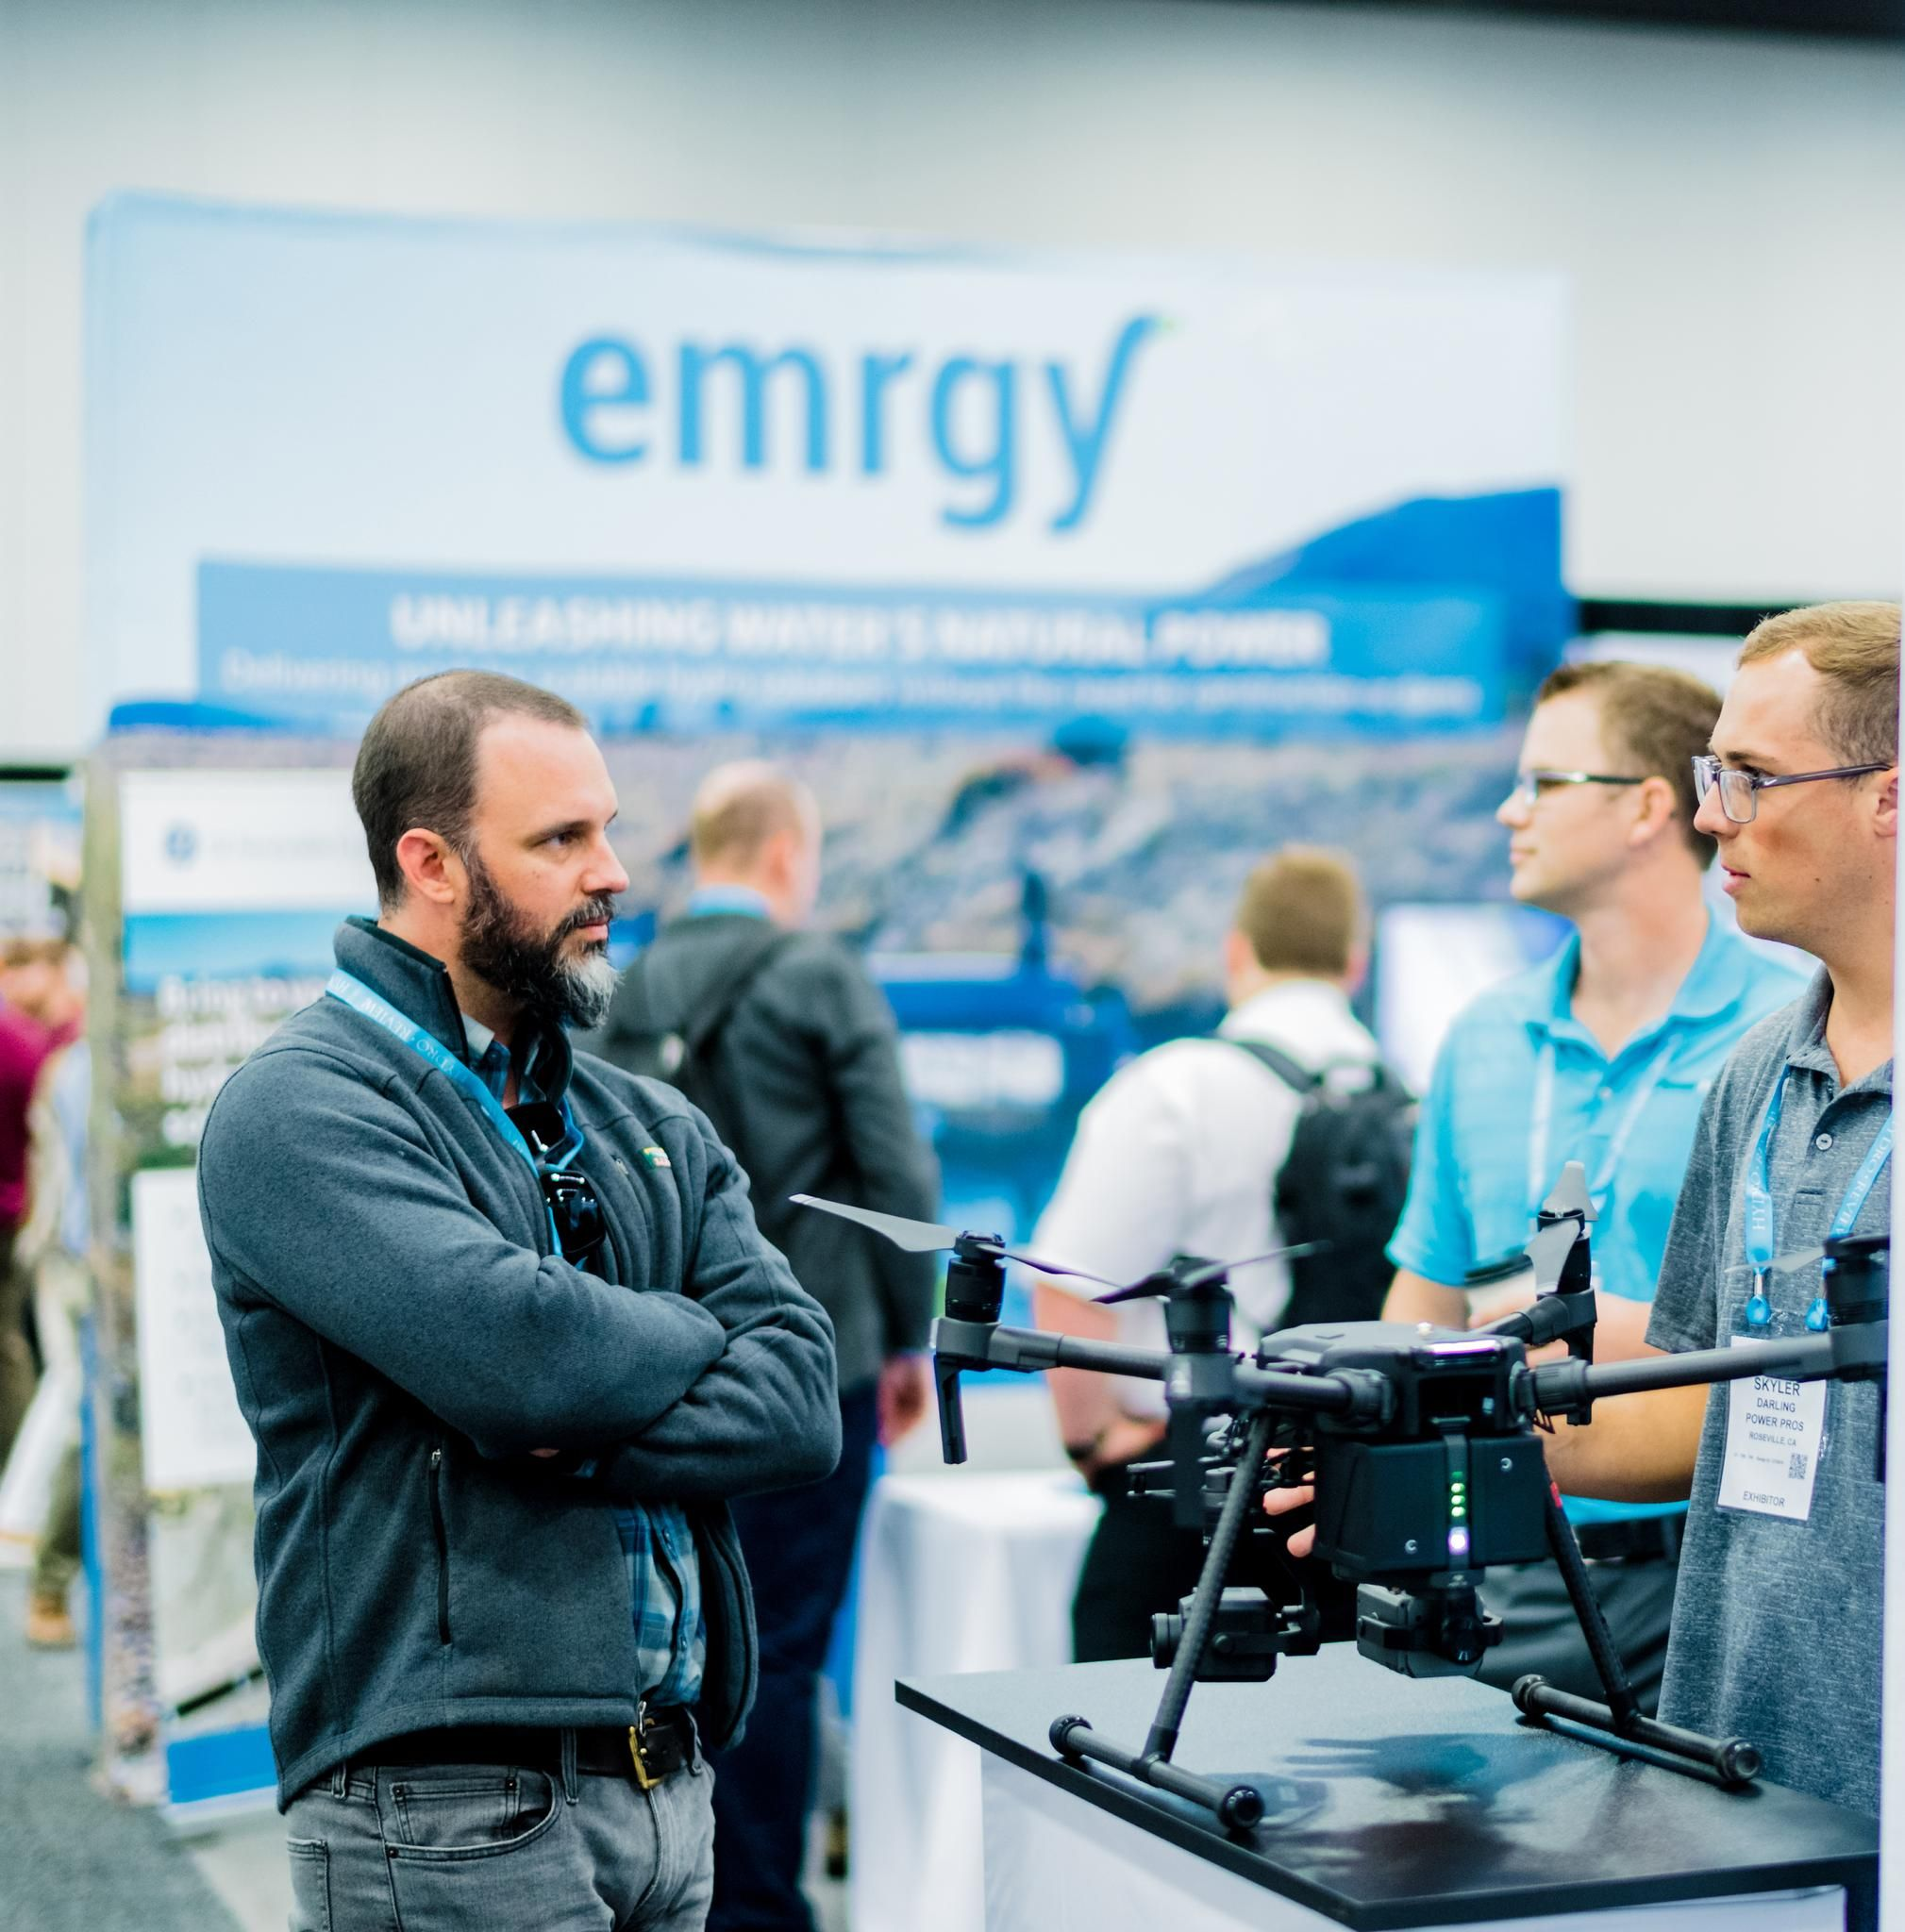 REGISTRATION IS NOW OPEN FOR WORLD'S LARGEST HYDROELECTRIC POWER EVENT